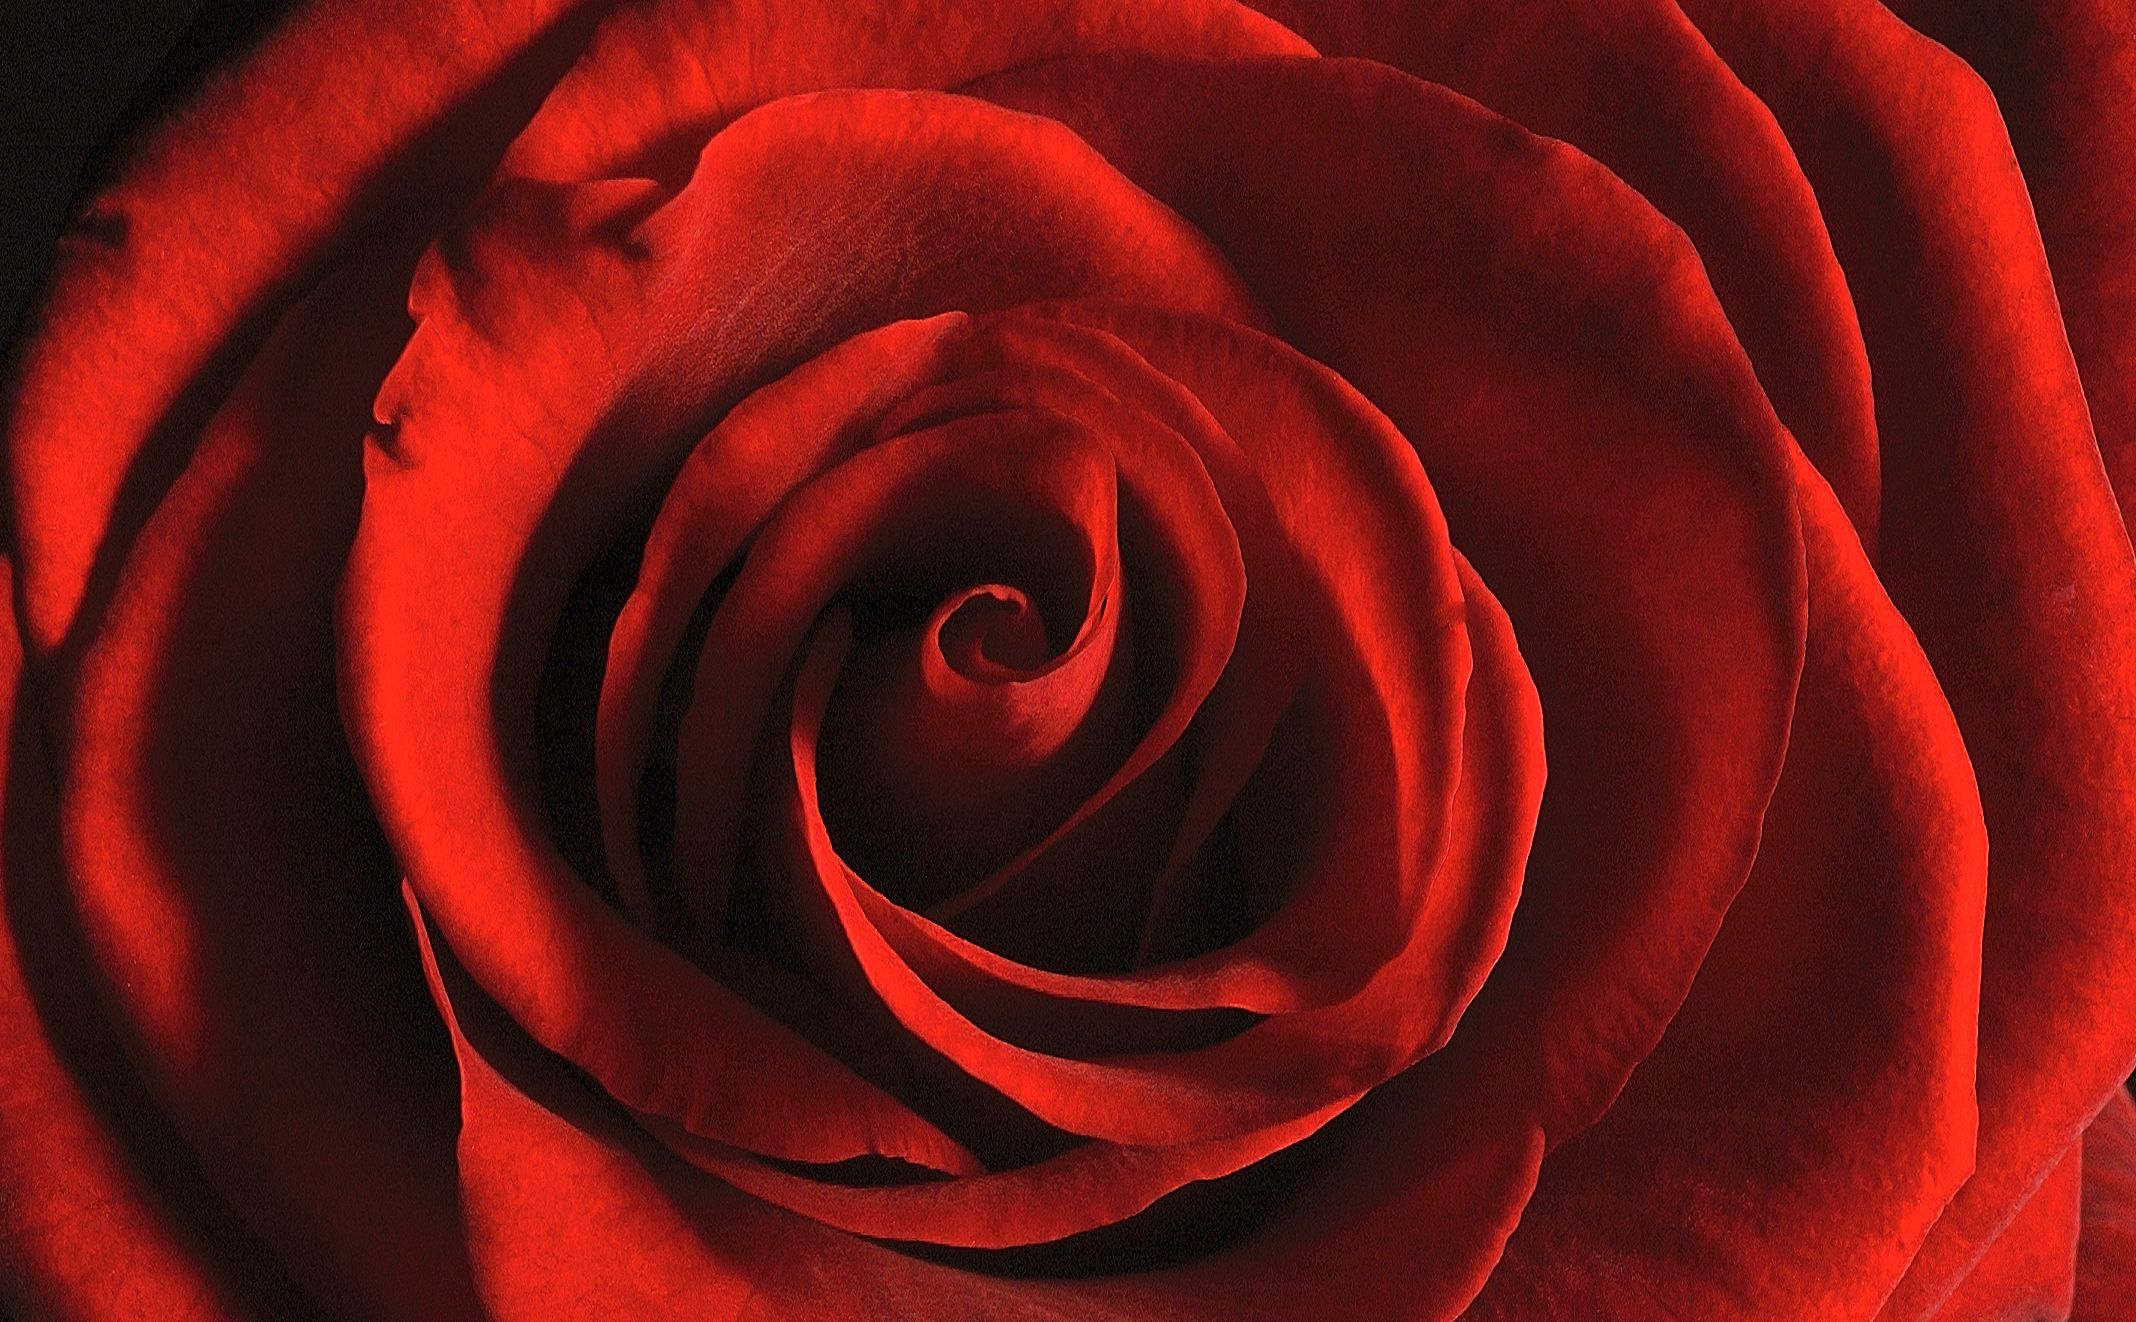 Red Rose by Paul Bussell